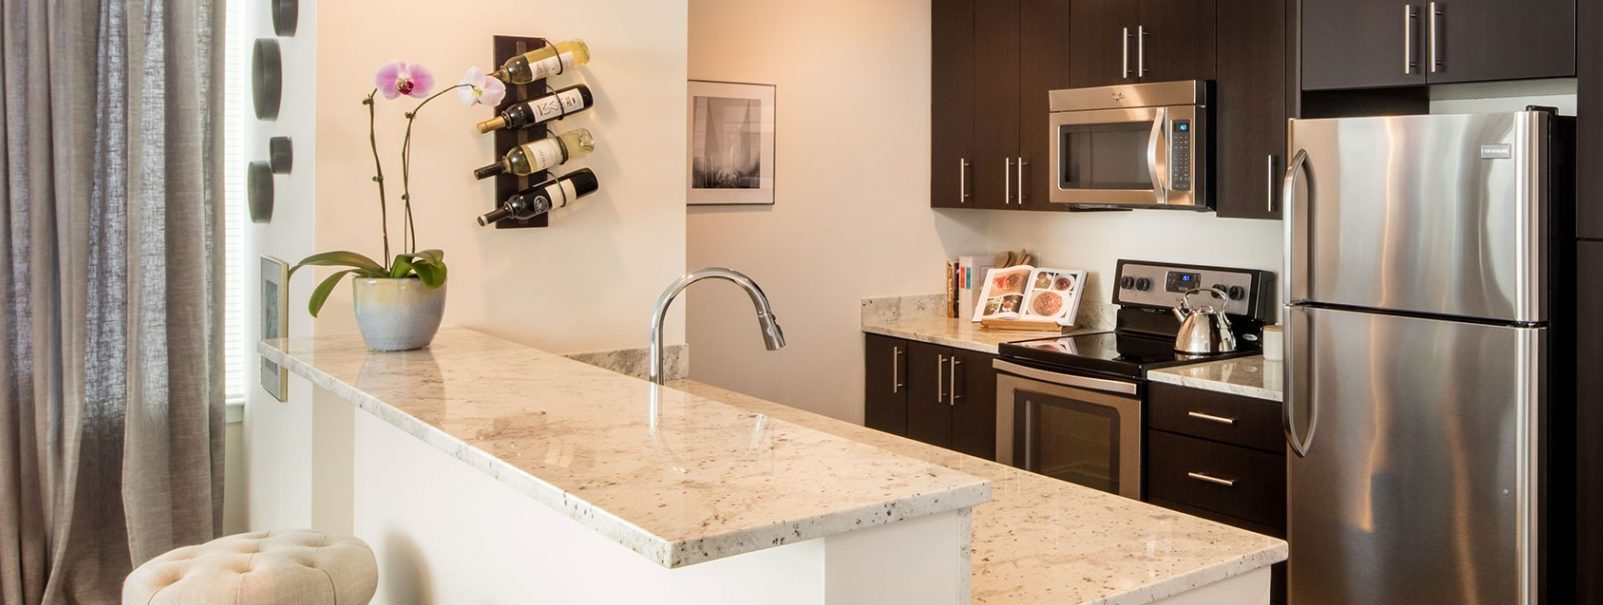 wide angle photo of a kitchen with marble island, brown cabinets and stainless steel appliances at The Morgan at Provost Square apartments